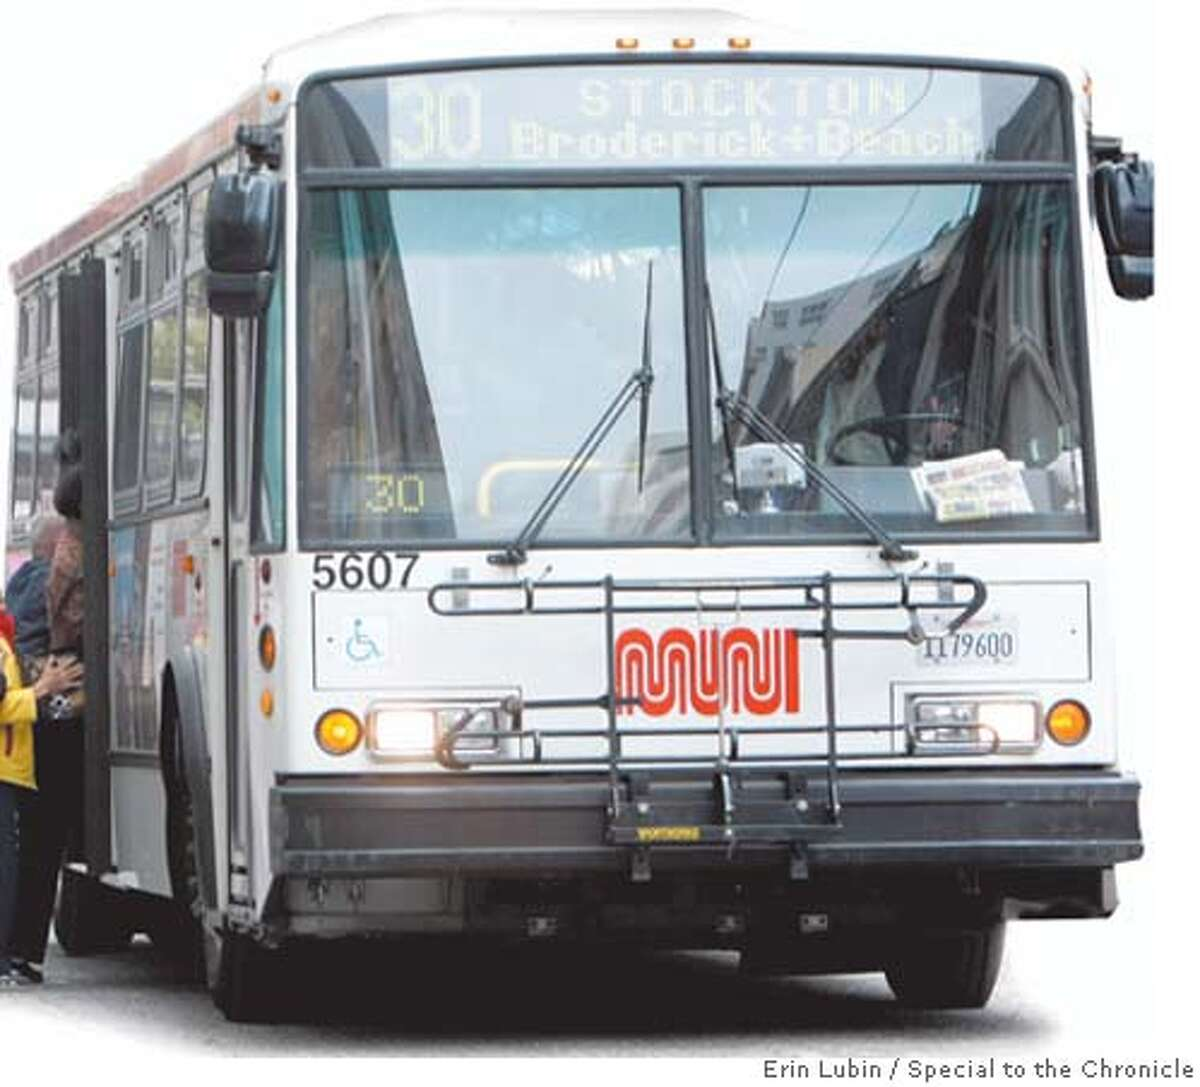 Mayor Newsom has abandoned his idea to eliminate fares on Muni. Photo by Erin Lubin, special to the Chronicle